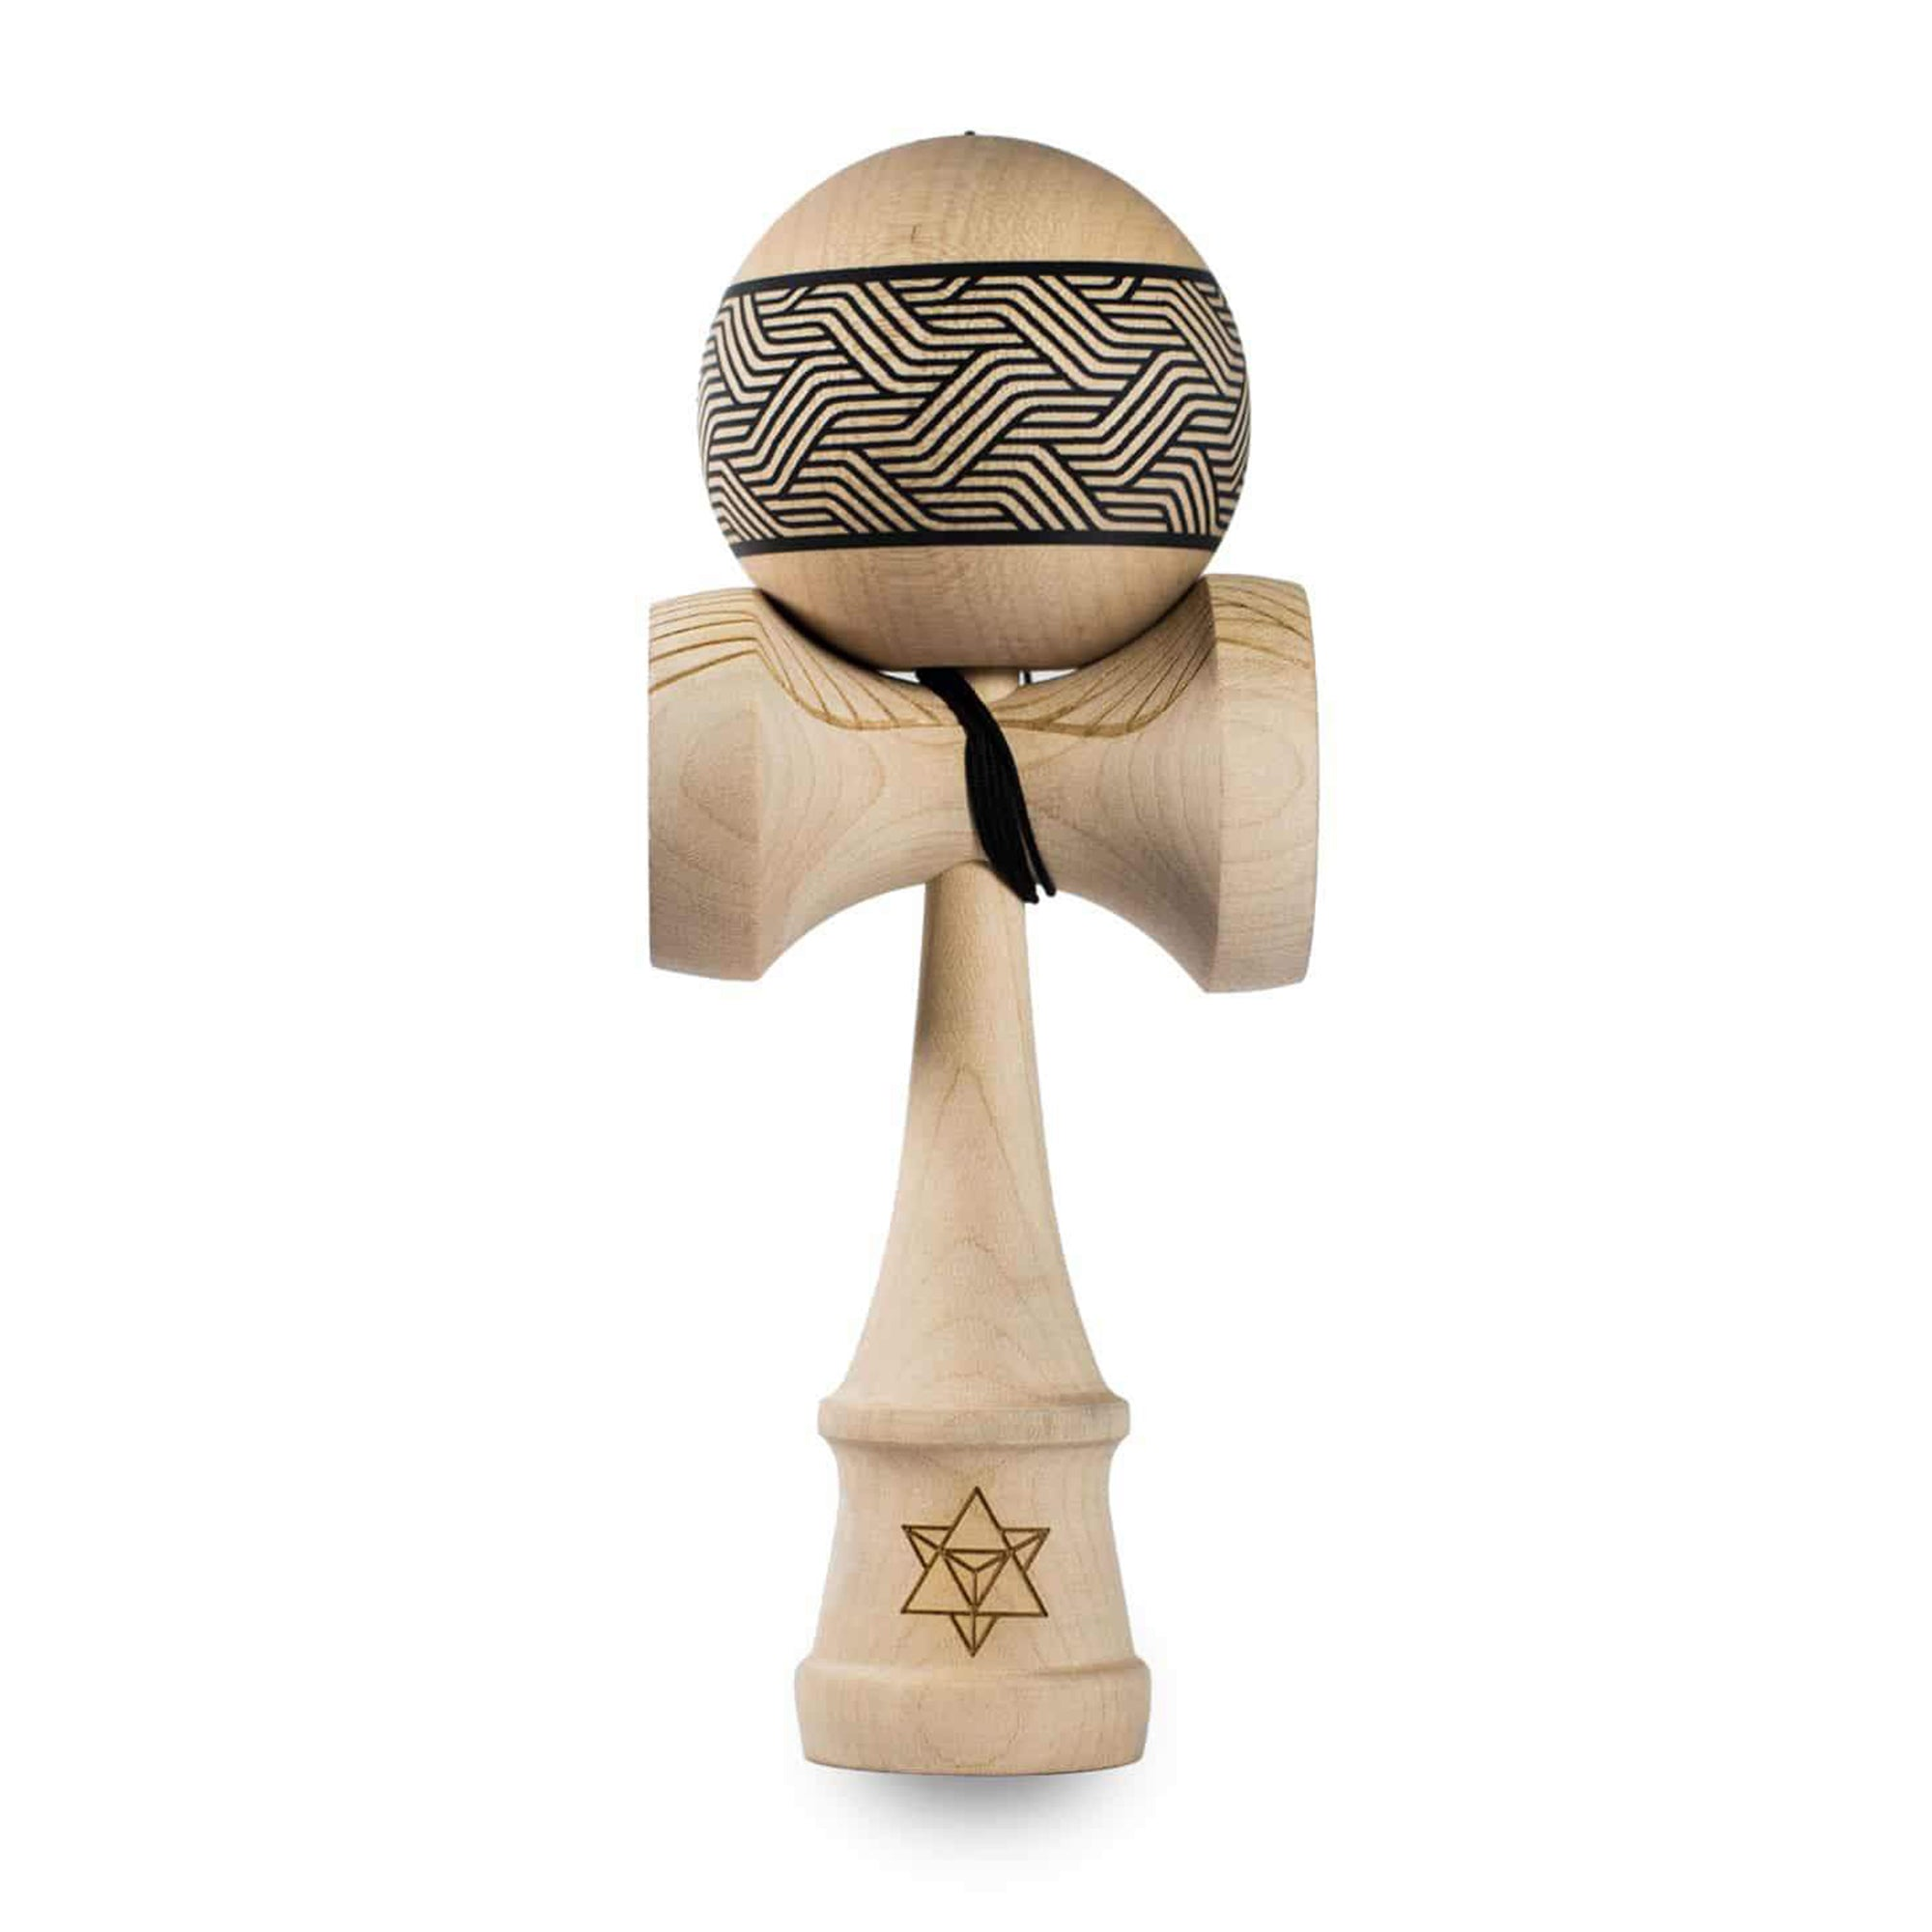 KENDAMA kendama israel big brother maple | ikigai - LANGBRETT online shop